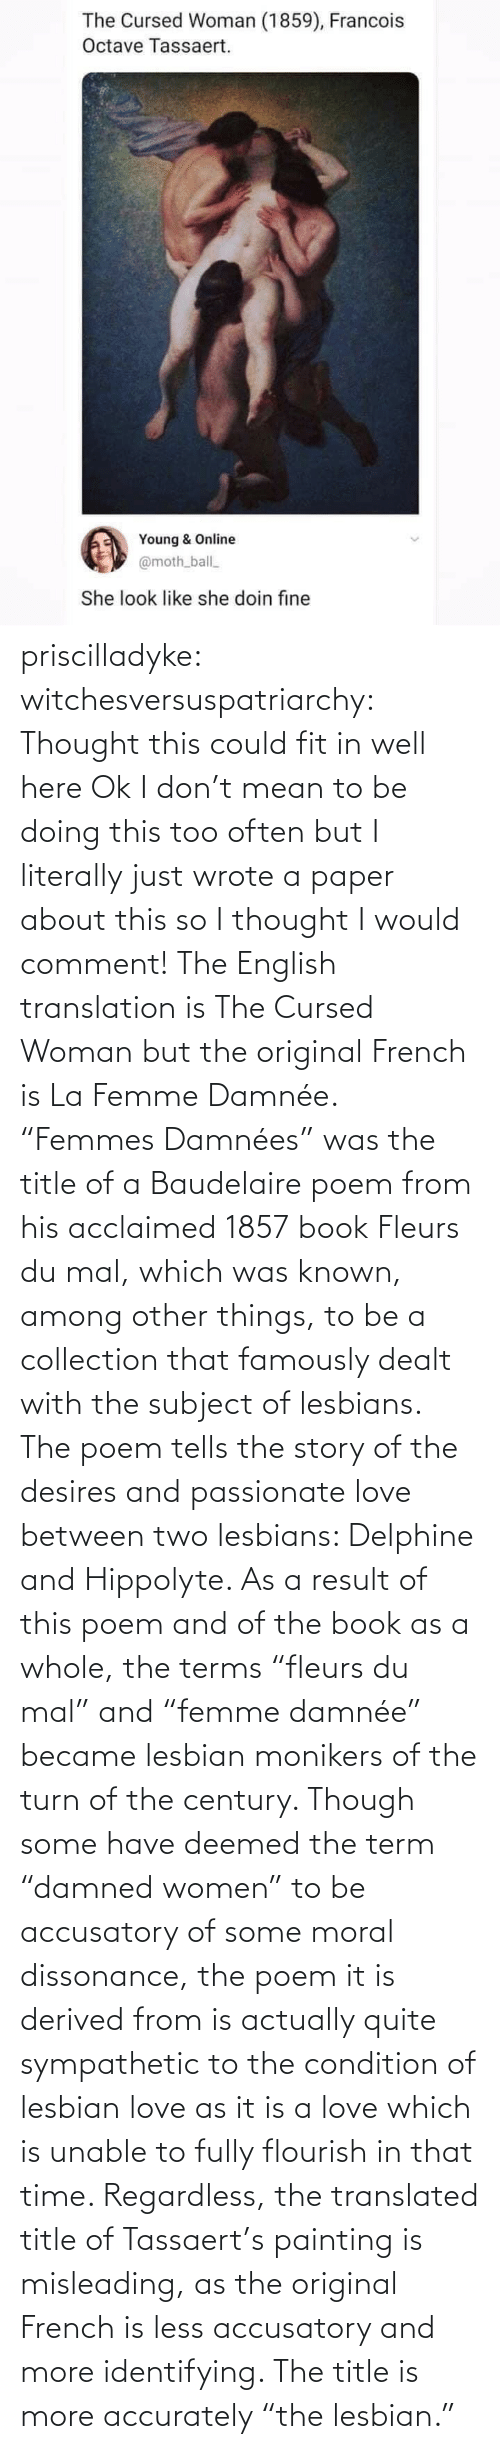 "i would: priscilladyke:  witchesversuspatriarchy: Thought this could fit in well here   Ok I don't mean to be doing this too often but I literally just wrote a paper about this so I thought I would comment! The English translation is The Cursed Woman but the original French is La Femme Damnée. ""Femmes Damnées"" was the title of a Baudelaire poem from his acclaimed 1857 book Fleurs du mal, which was known, among other things, to be a collection that famously dealt with the subject of lesbians. The poem tells the story of the desires and passionate love between two lesbians:  Delphine and Hippolyte. As a result of this poem and of the book as a whole, the terms ""fleurs du mal"" and ""femme damnée"" became lesbian monikers of the turn of the century. Though some have deemed the term ""damned women"" to be accusatory of some moral dissonance, the poem it is derived from is actually quite sympathetic to the condition of lesbian love as it is a love which is unable to fully flourish in that time. Regardless, the translated title of Tassaert's painting is misleading, as the original French is less accusatory and more identifying. The title is more accurately ""the lesbian."""